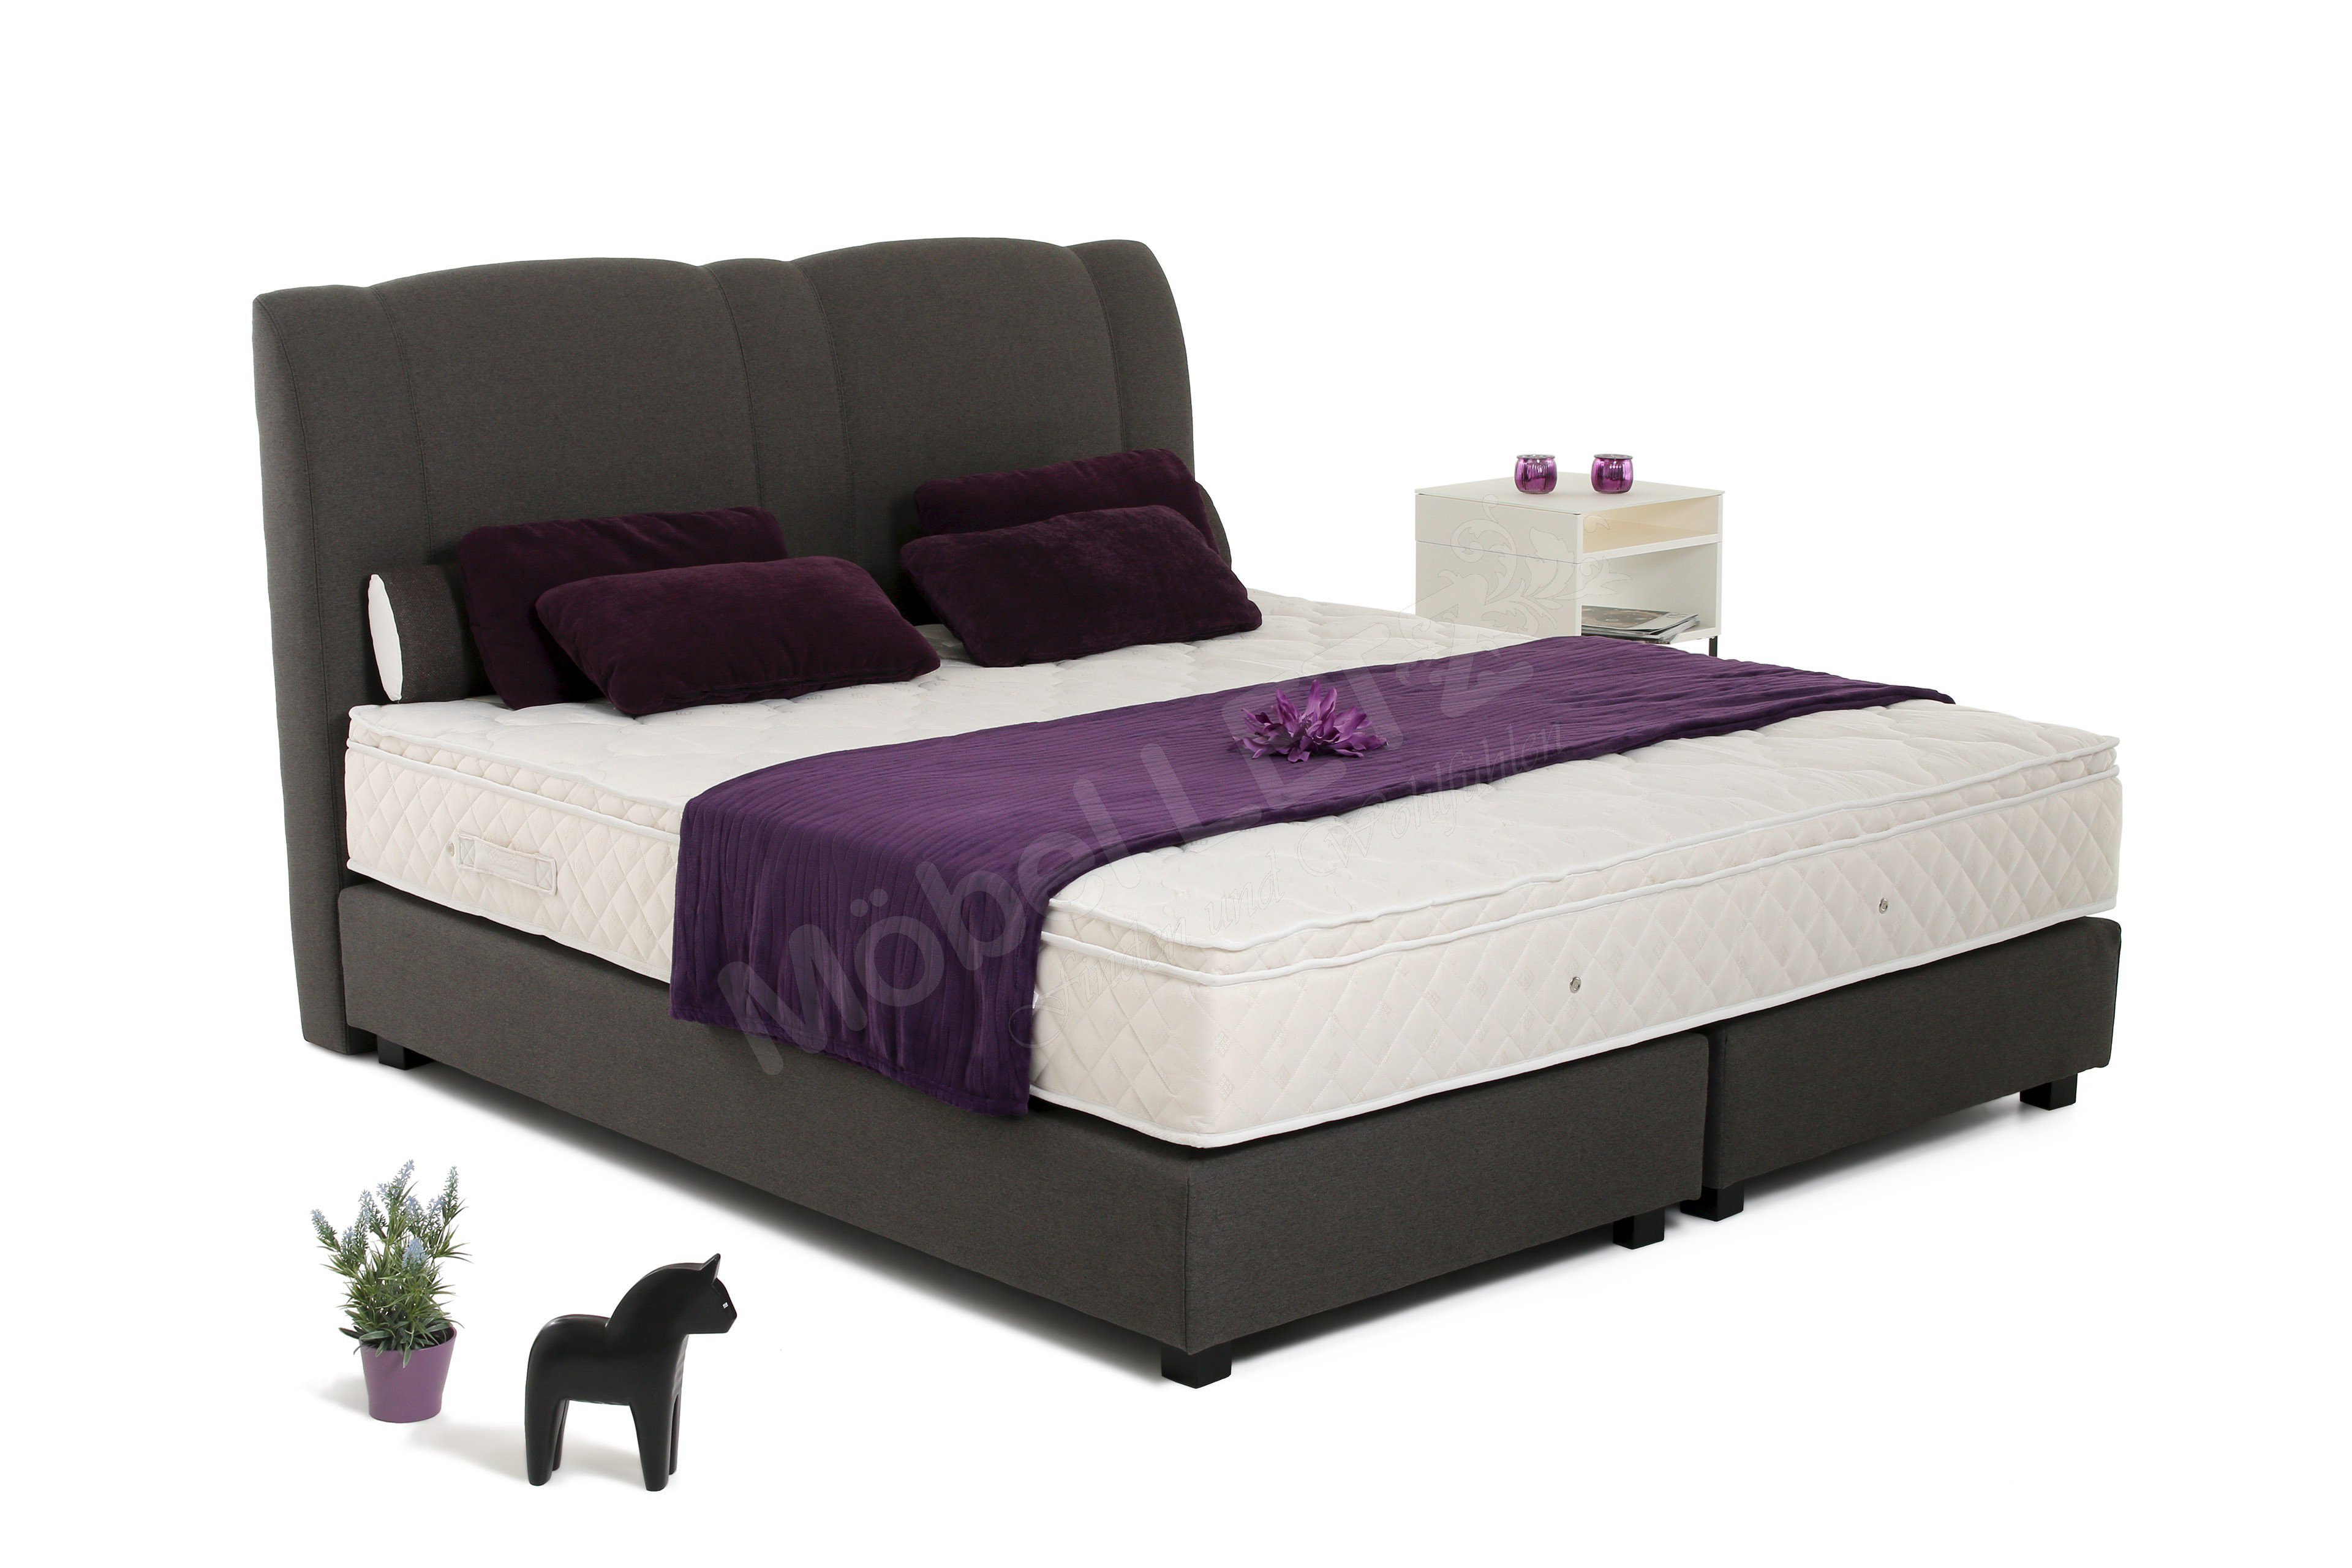 boxspringbett majken von skandinavische m bel mit extra. Black Bedroom Furniture Sets. Home Design Ideas